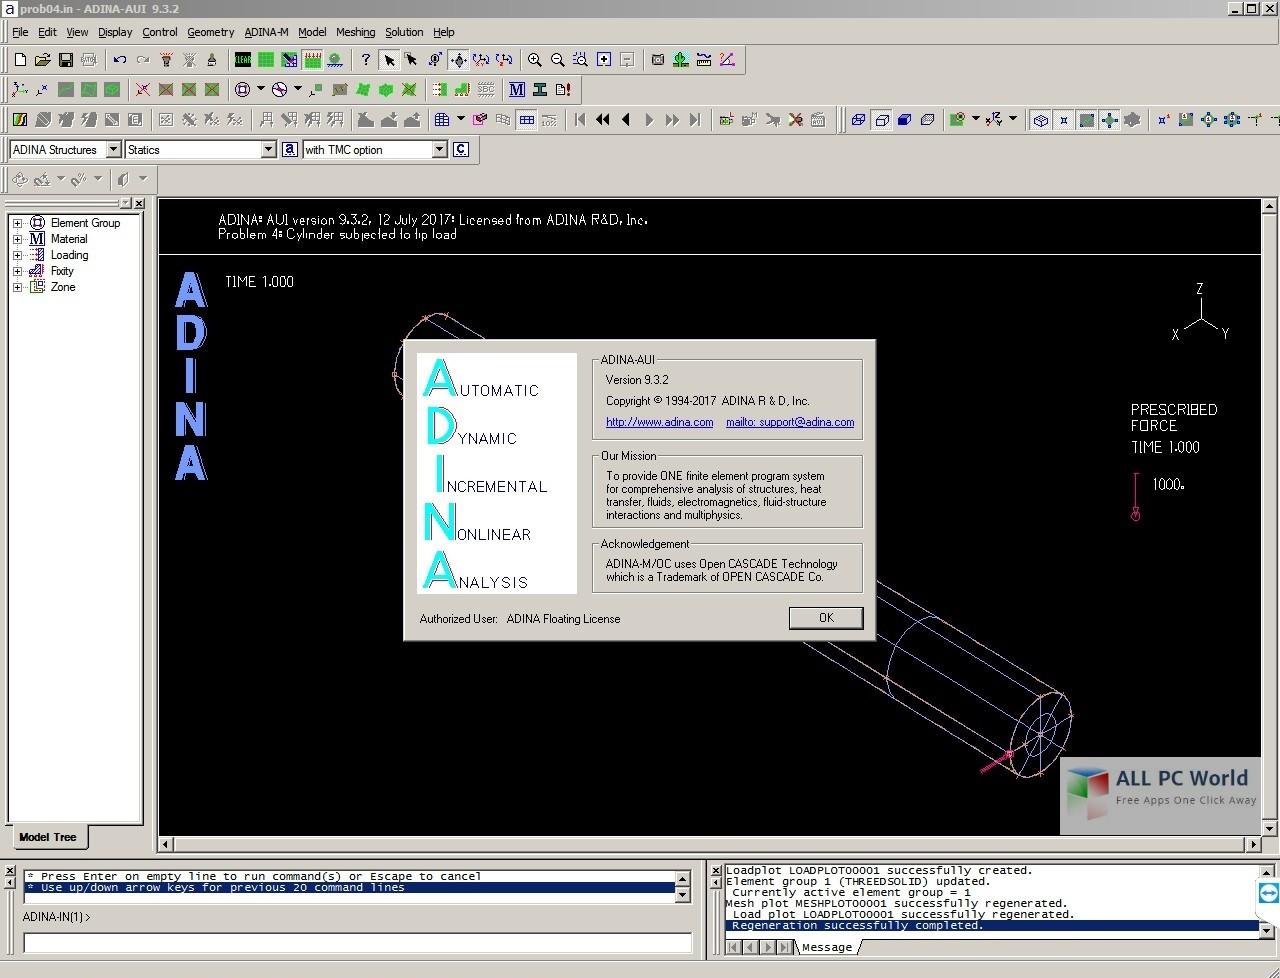 ADINA System 9.6.3 Crack Serial Key